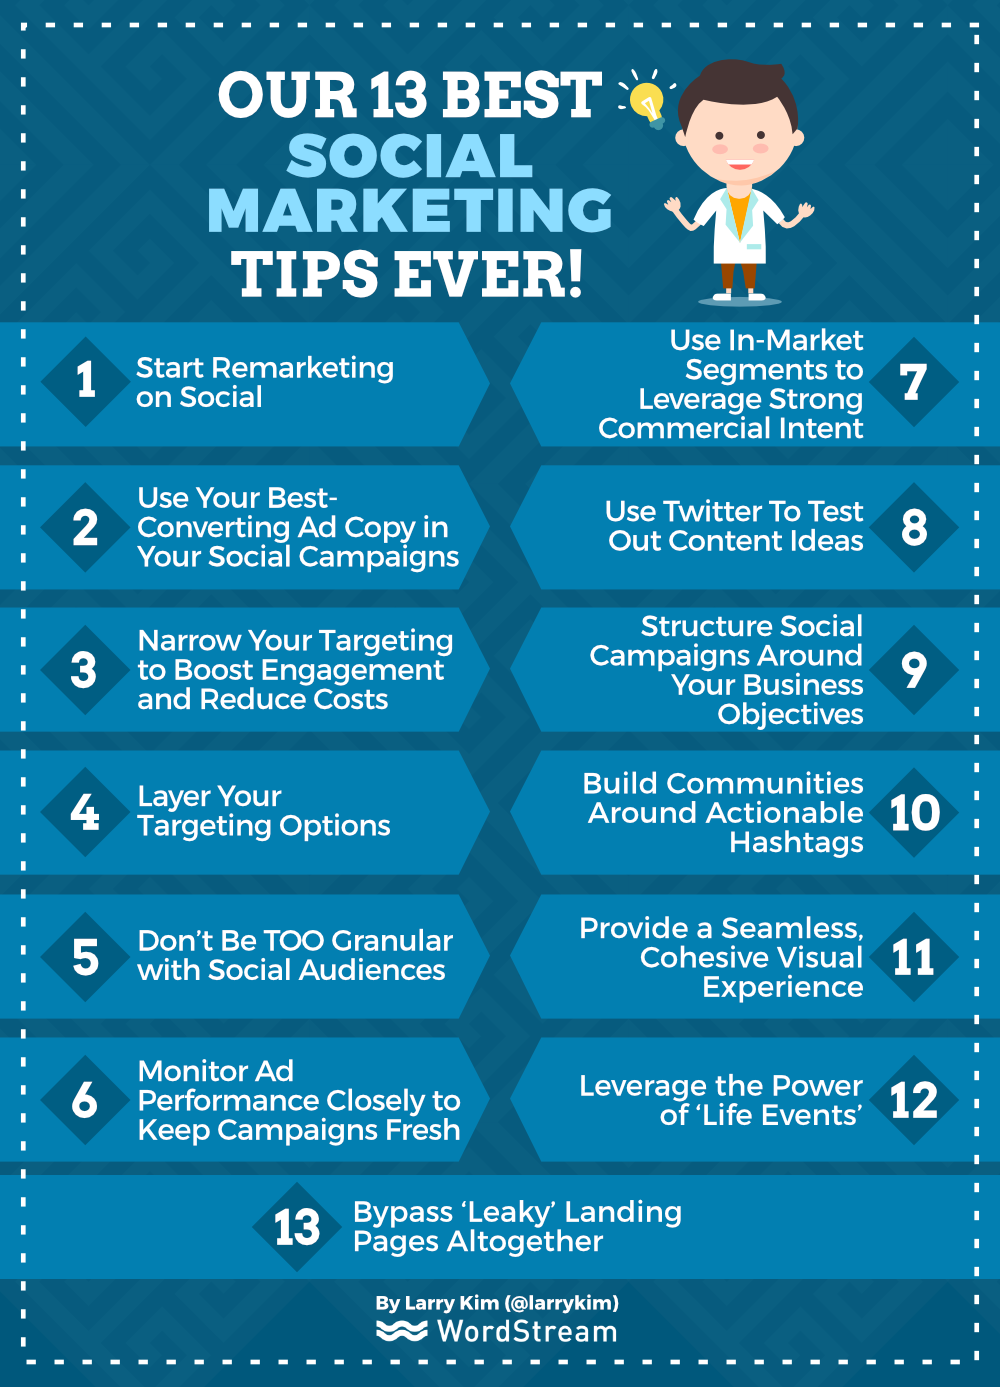 Amazing social media marketing tips from https://www.wordstream.com/blog/ws/2016/01/11/social-media-marketing-tips